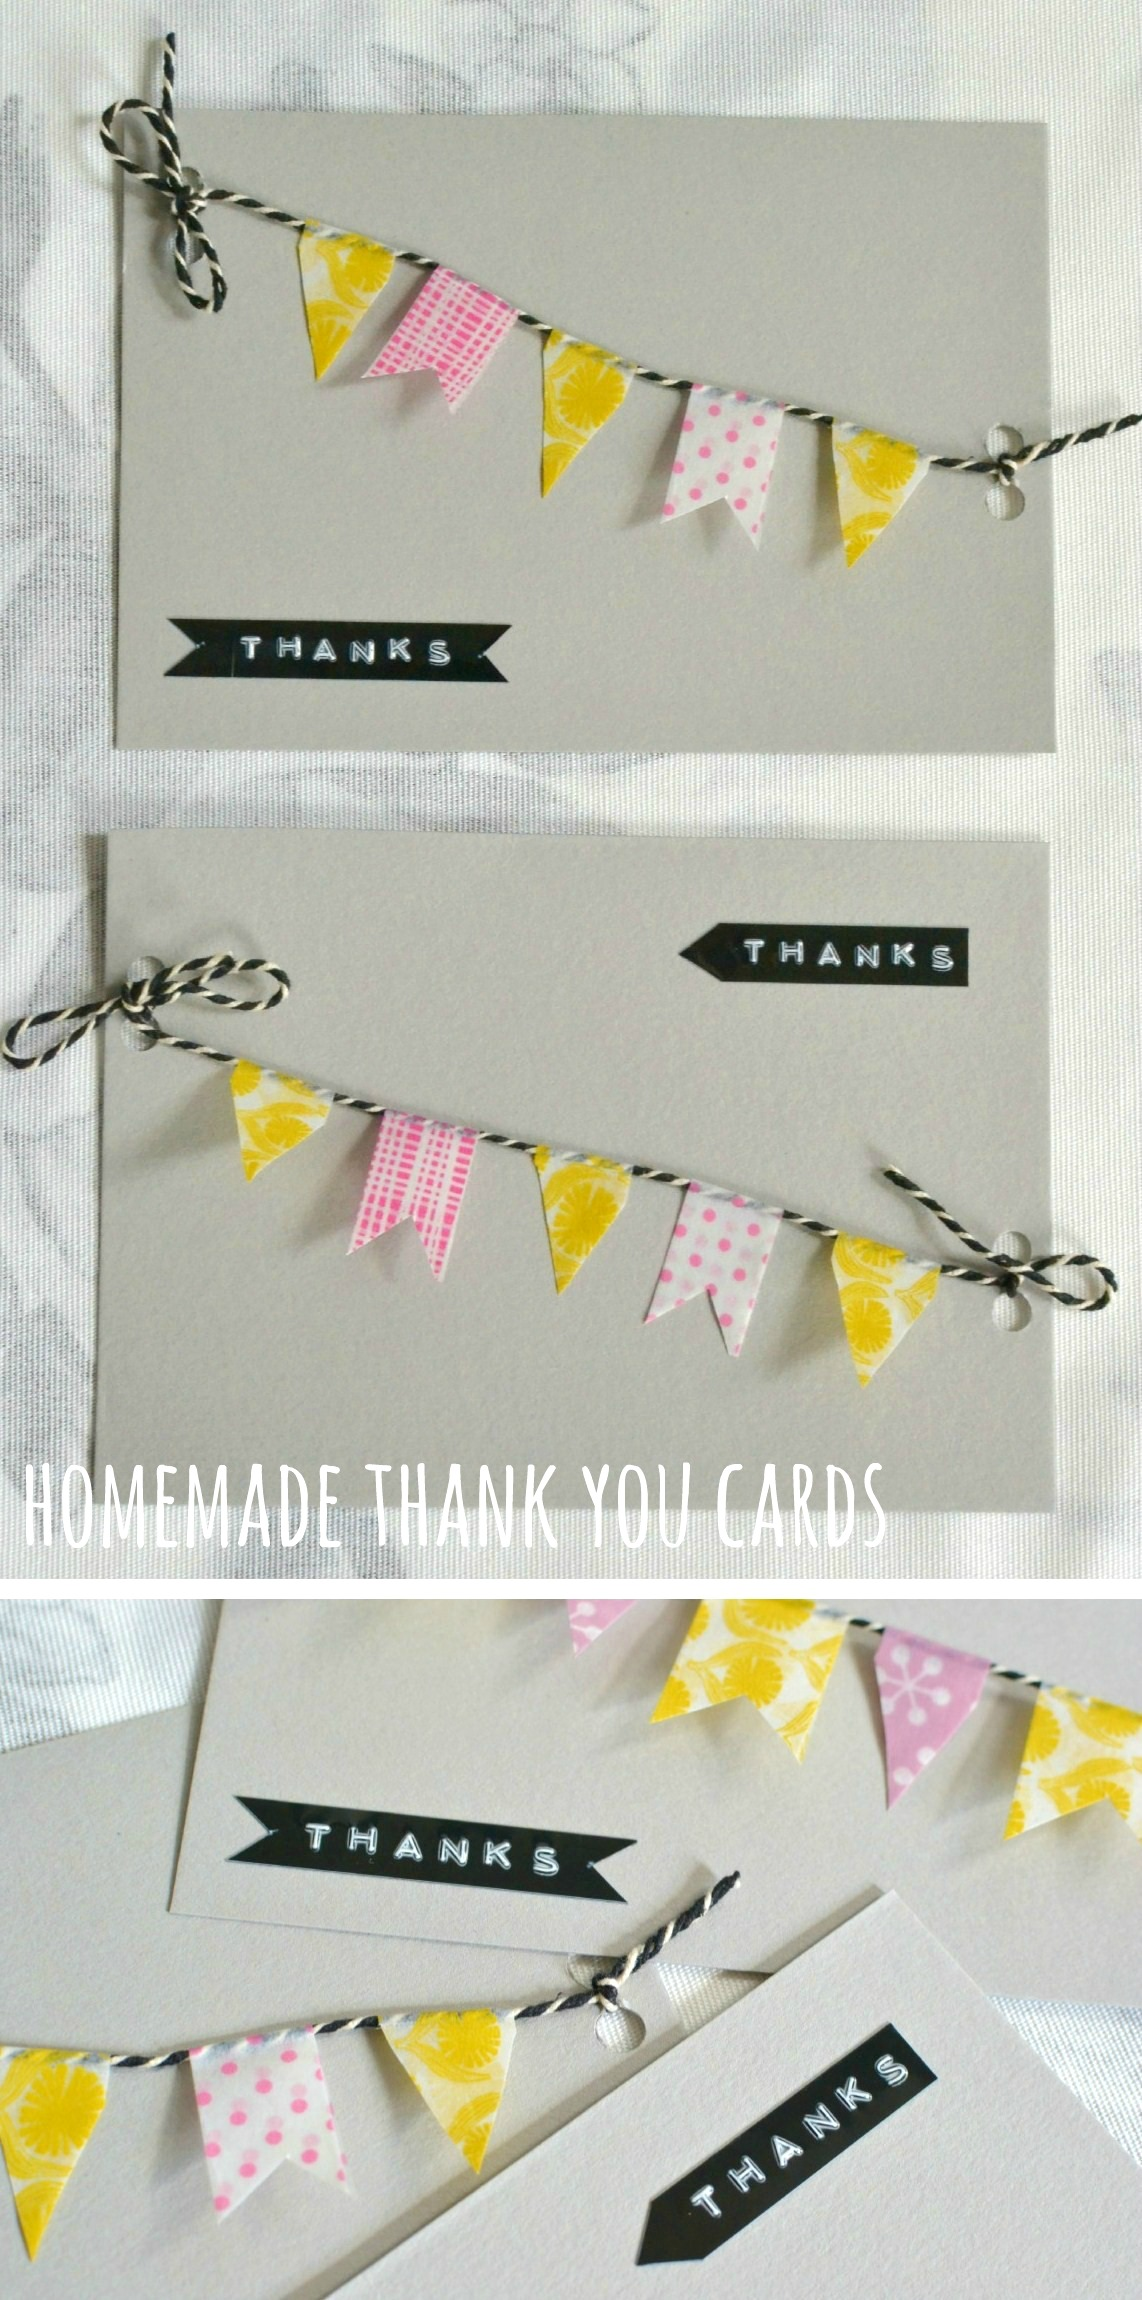 homemade thank you card ideas t2BTKSRL